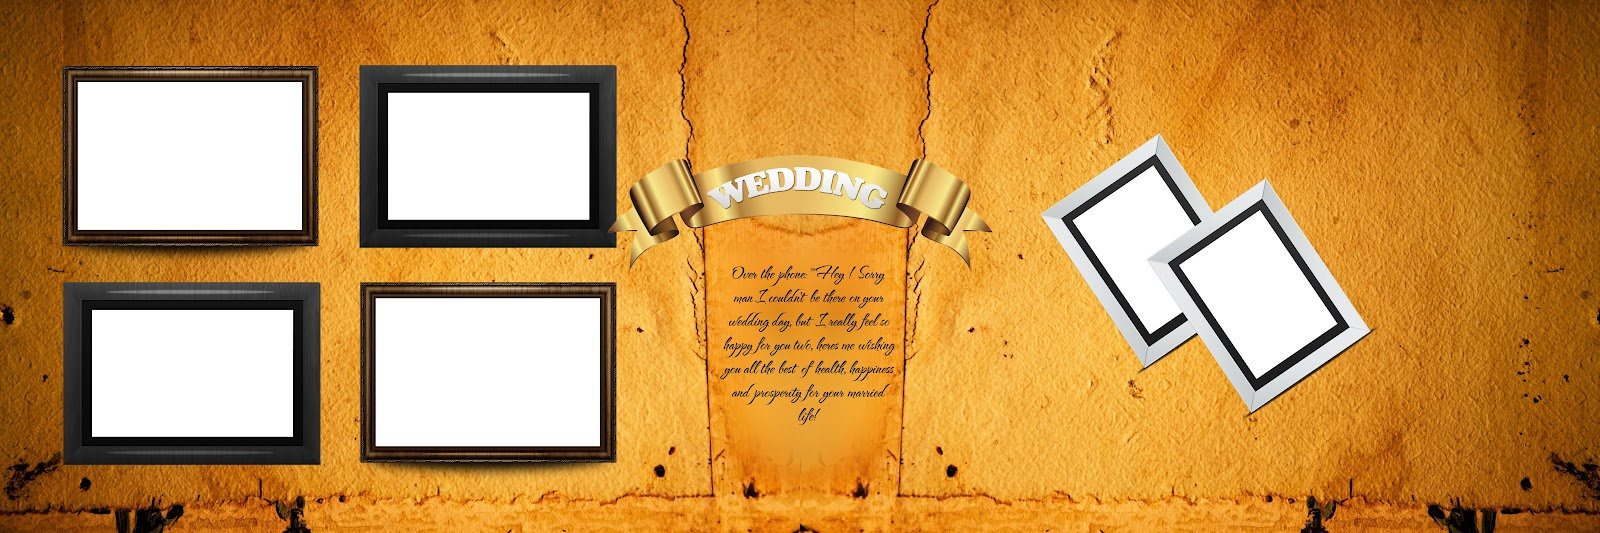 New 12X36 Wedding album Templates